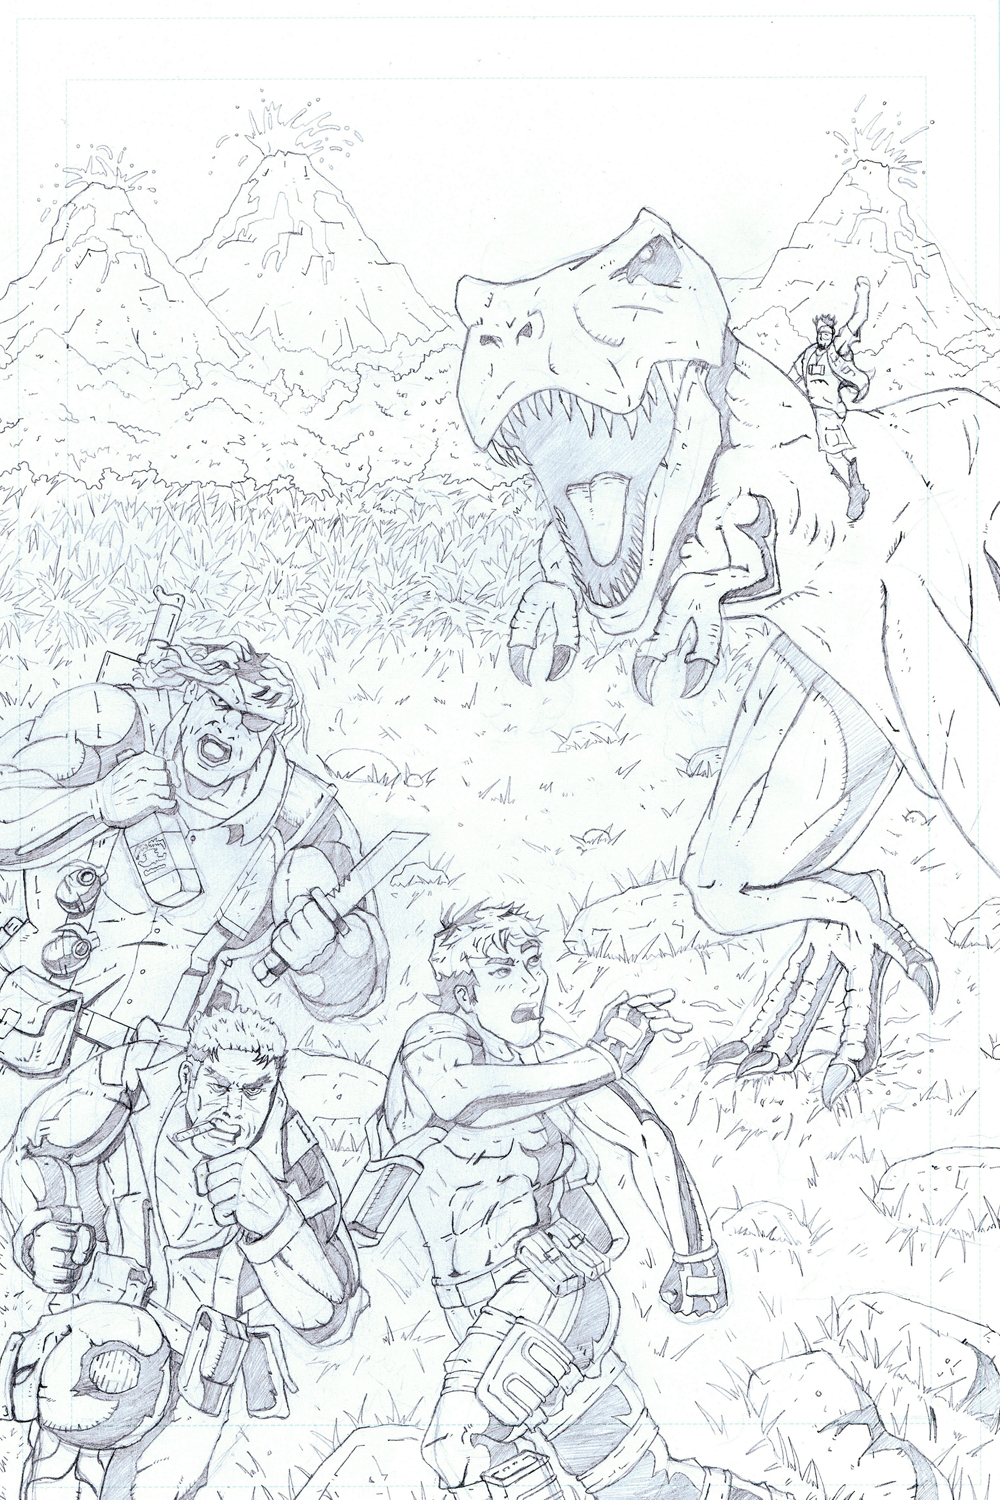 MISSION 003: A WALK IN THE (JURASSIC) PARK-PENCIL